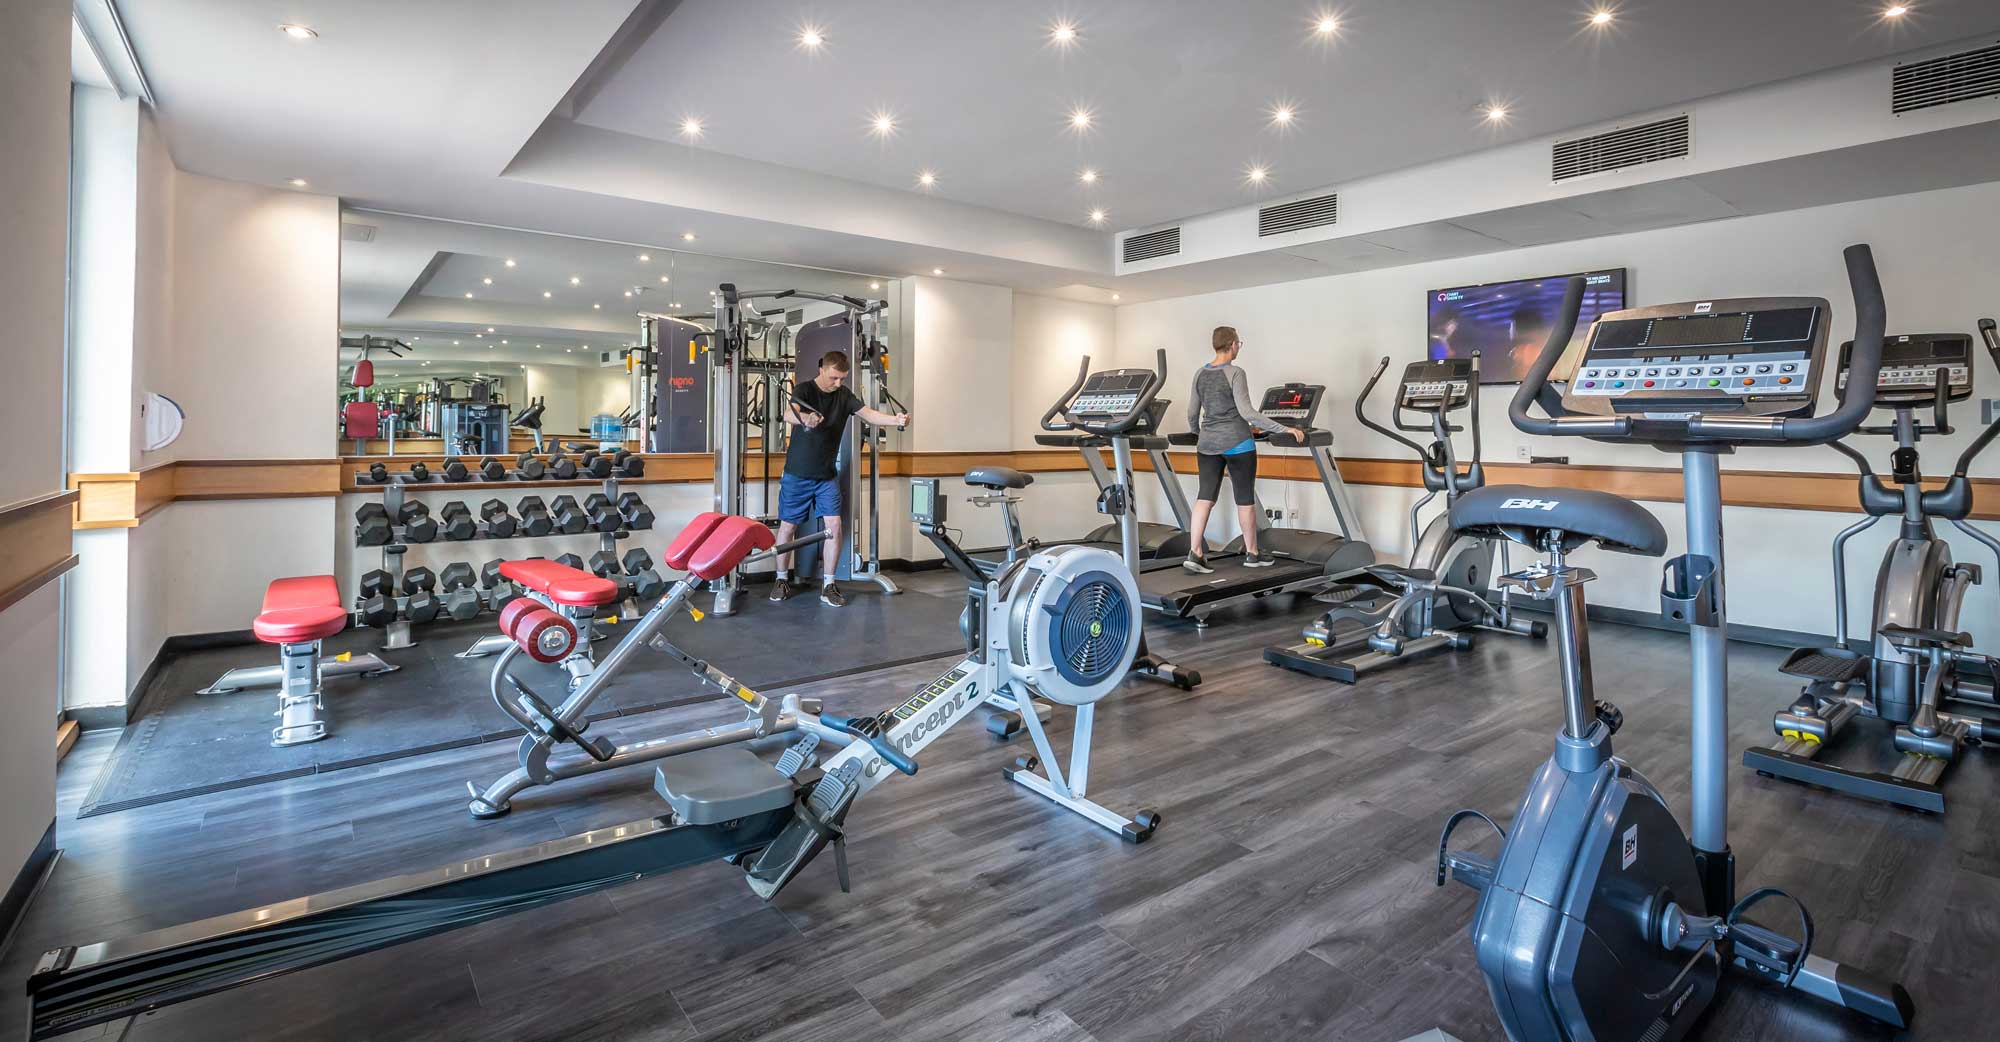 Gym facilities at Clayton Hotel Manchester